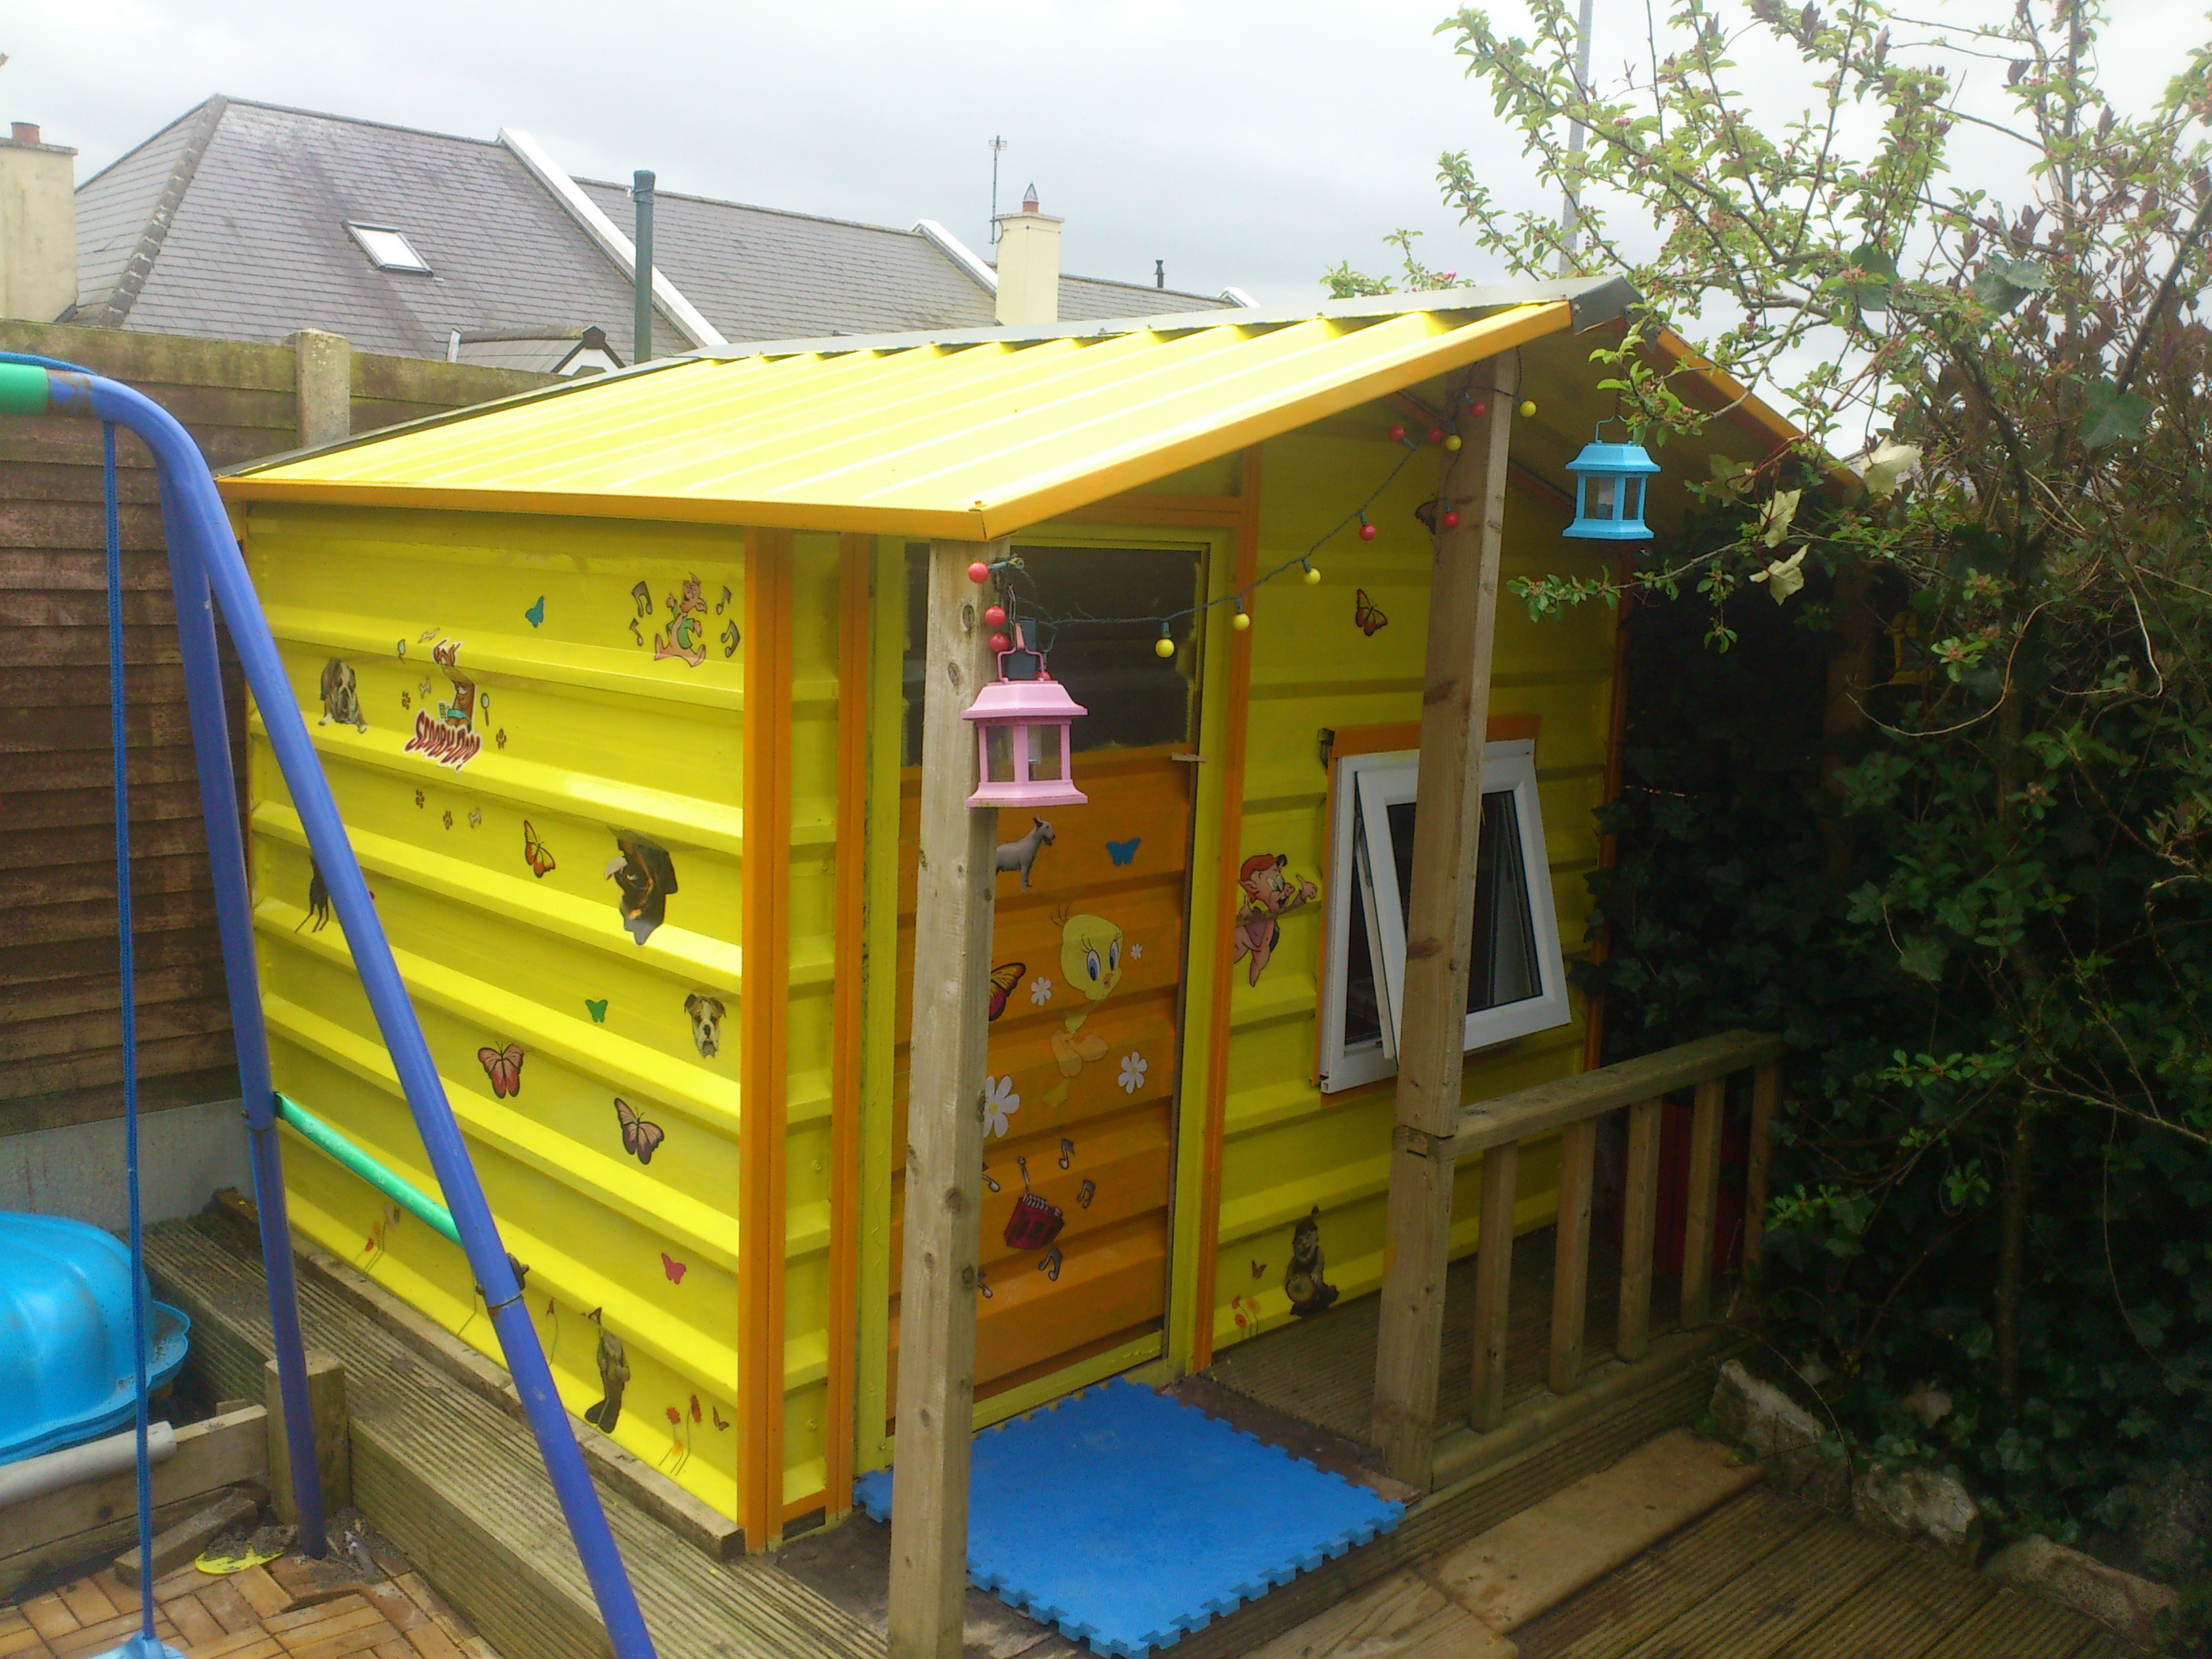 A Playhouse for the kiddies!